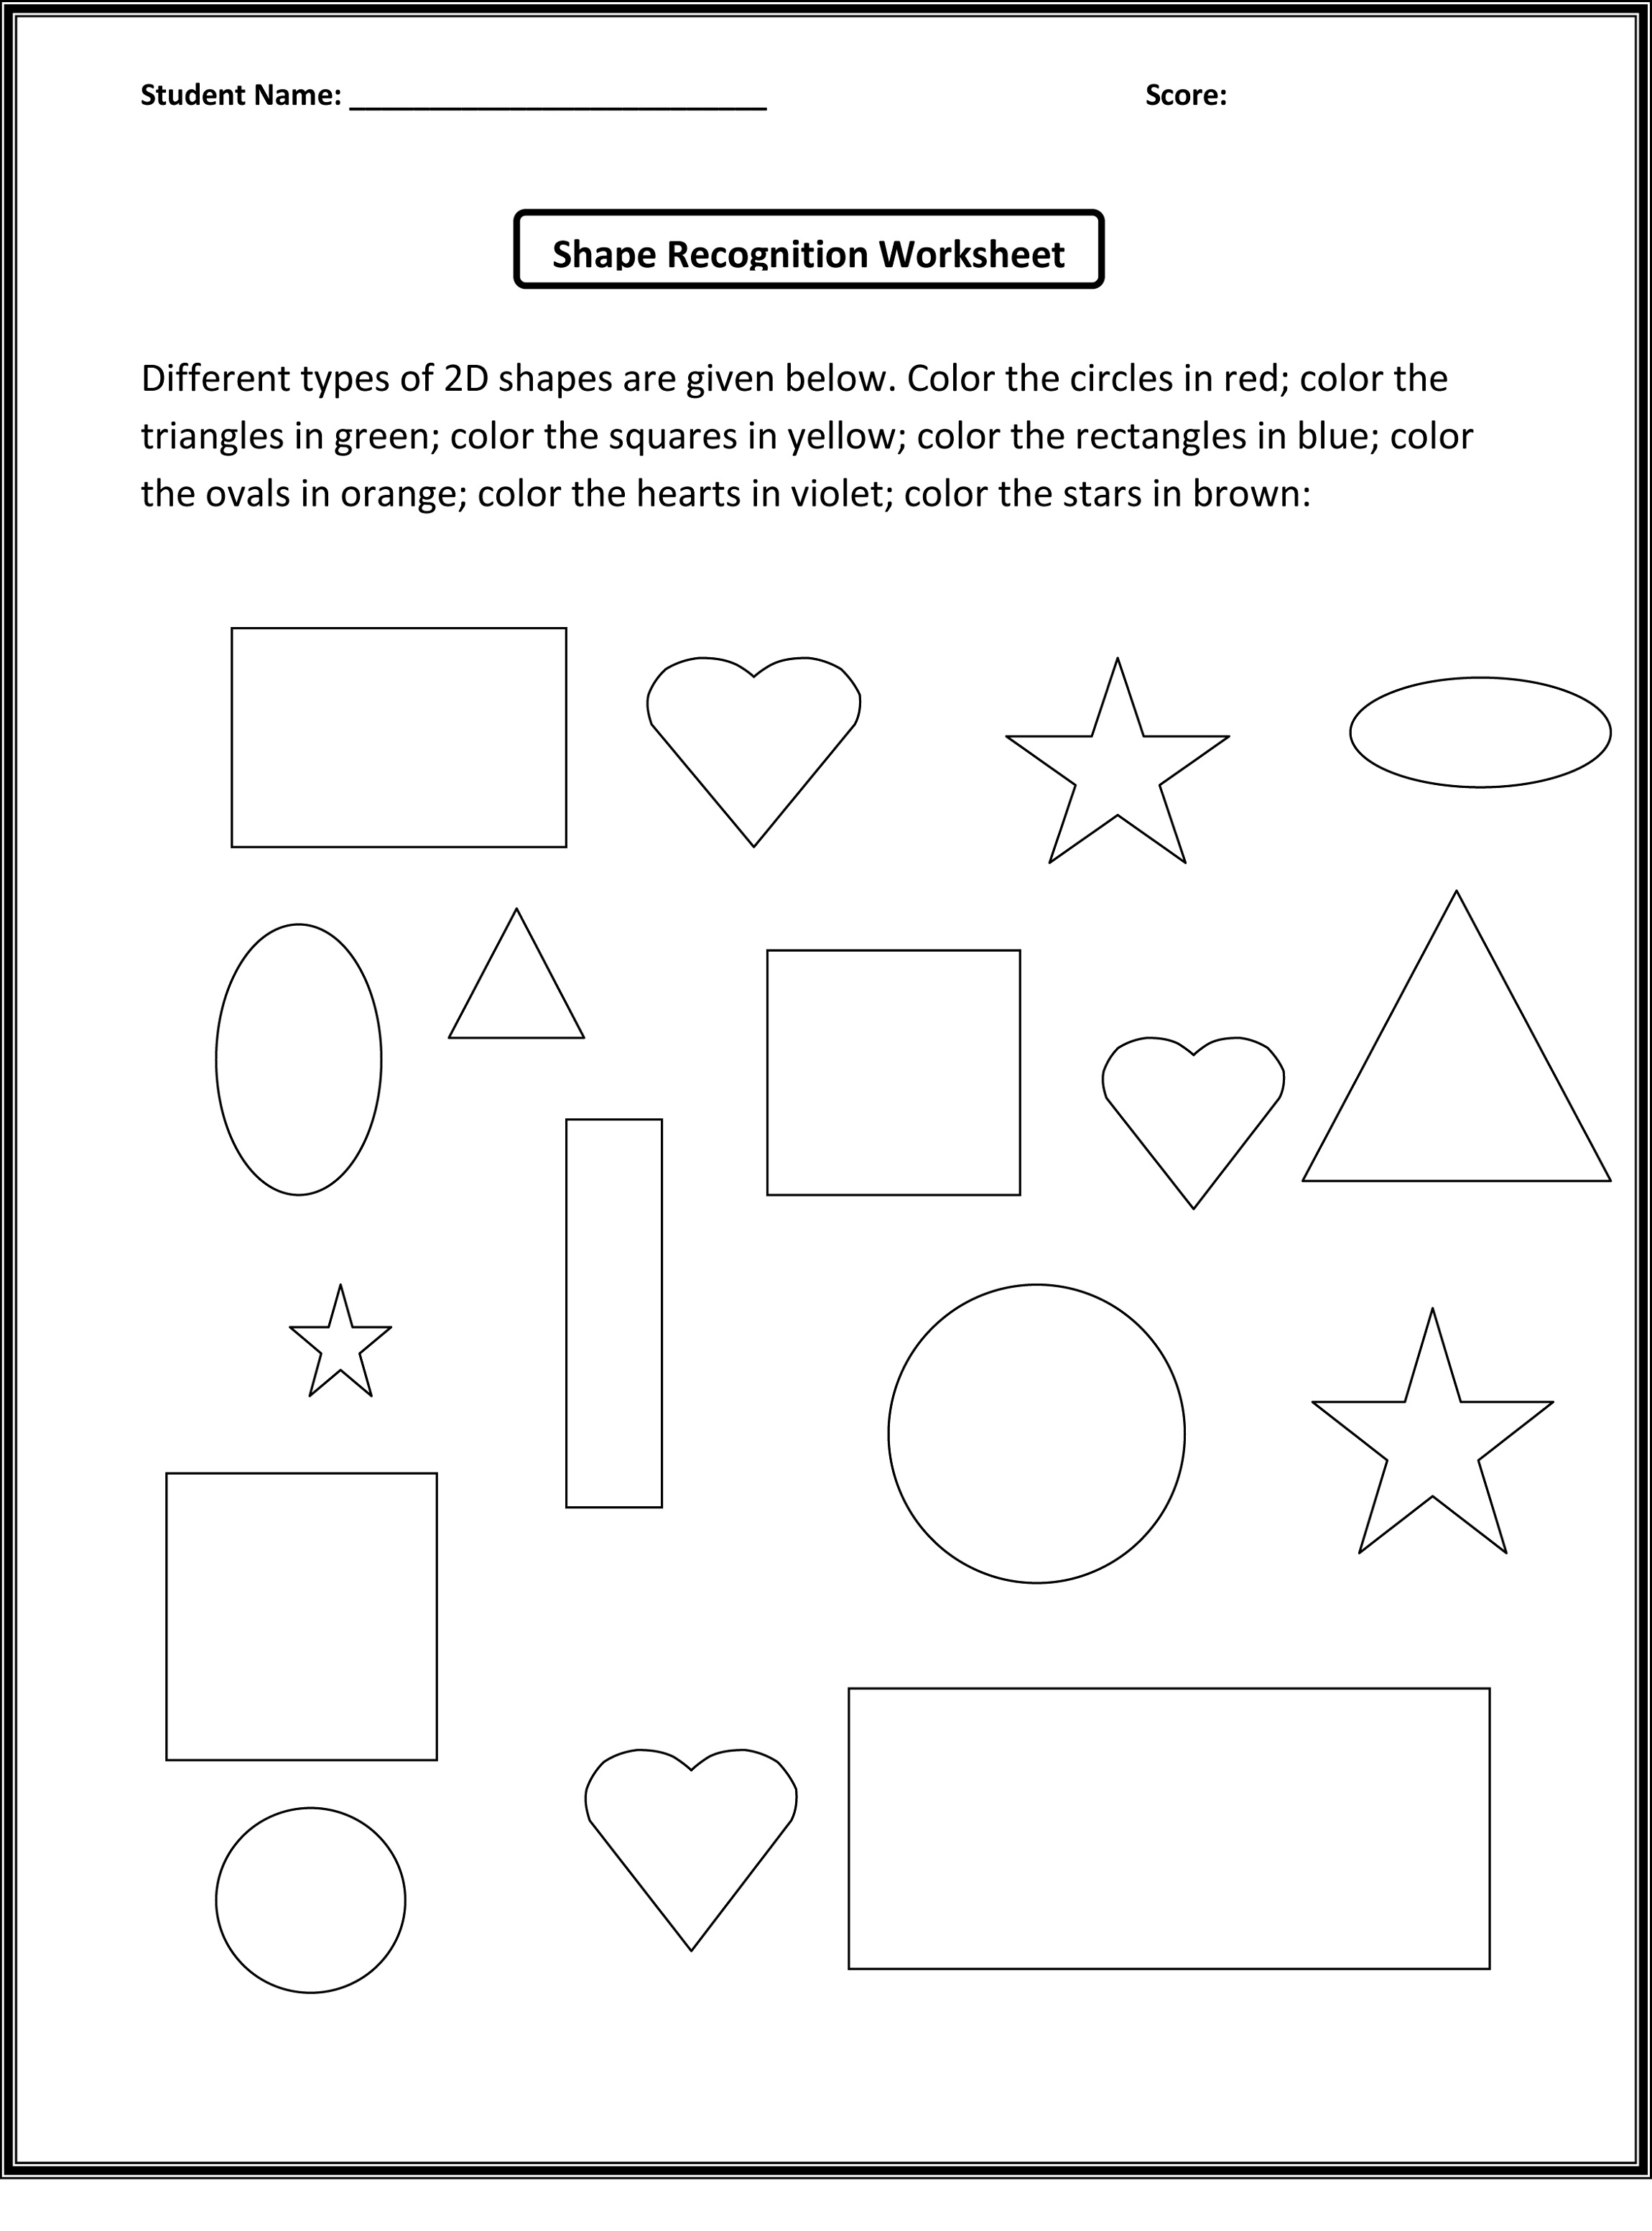 Mathworksheets4kids Shape